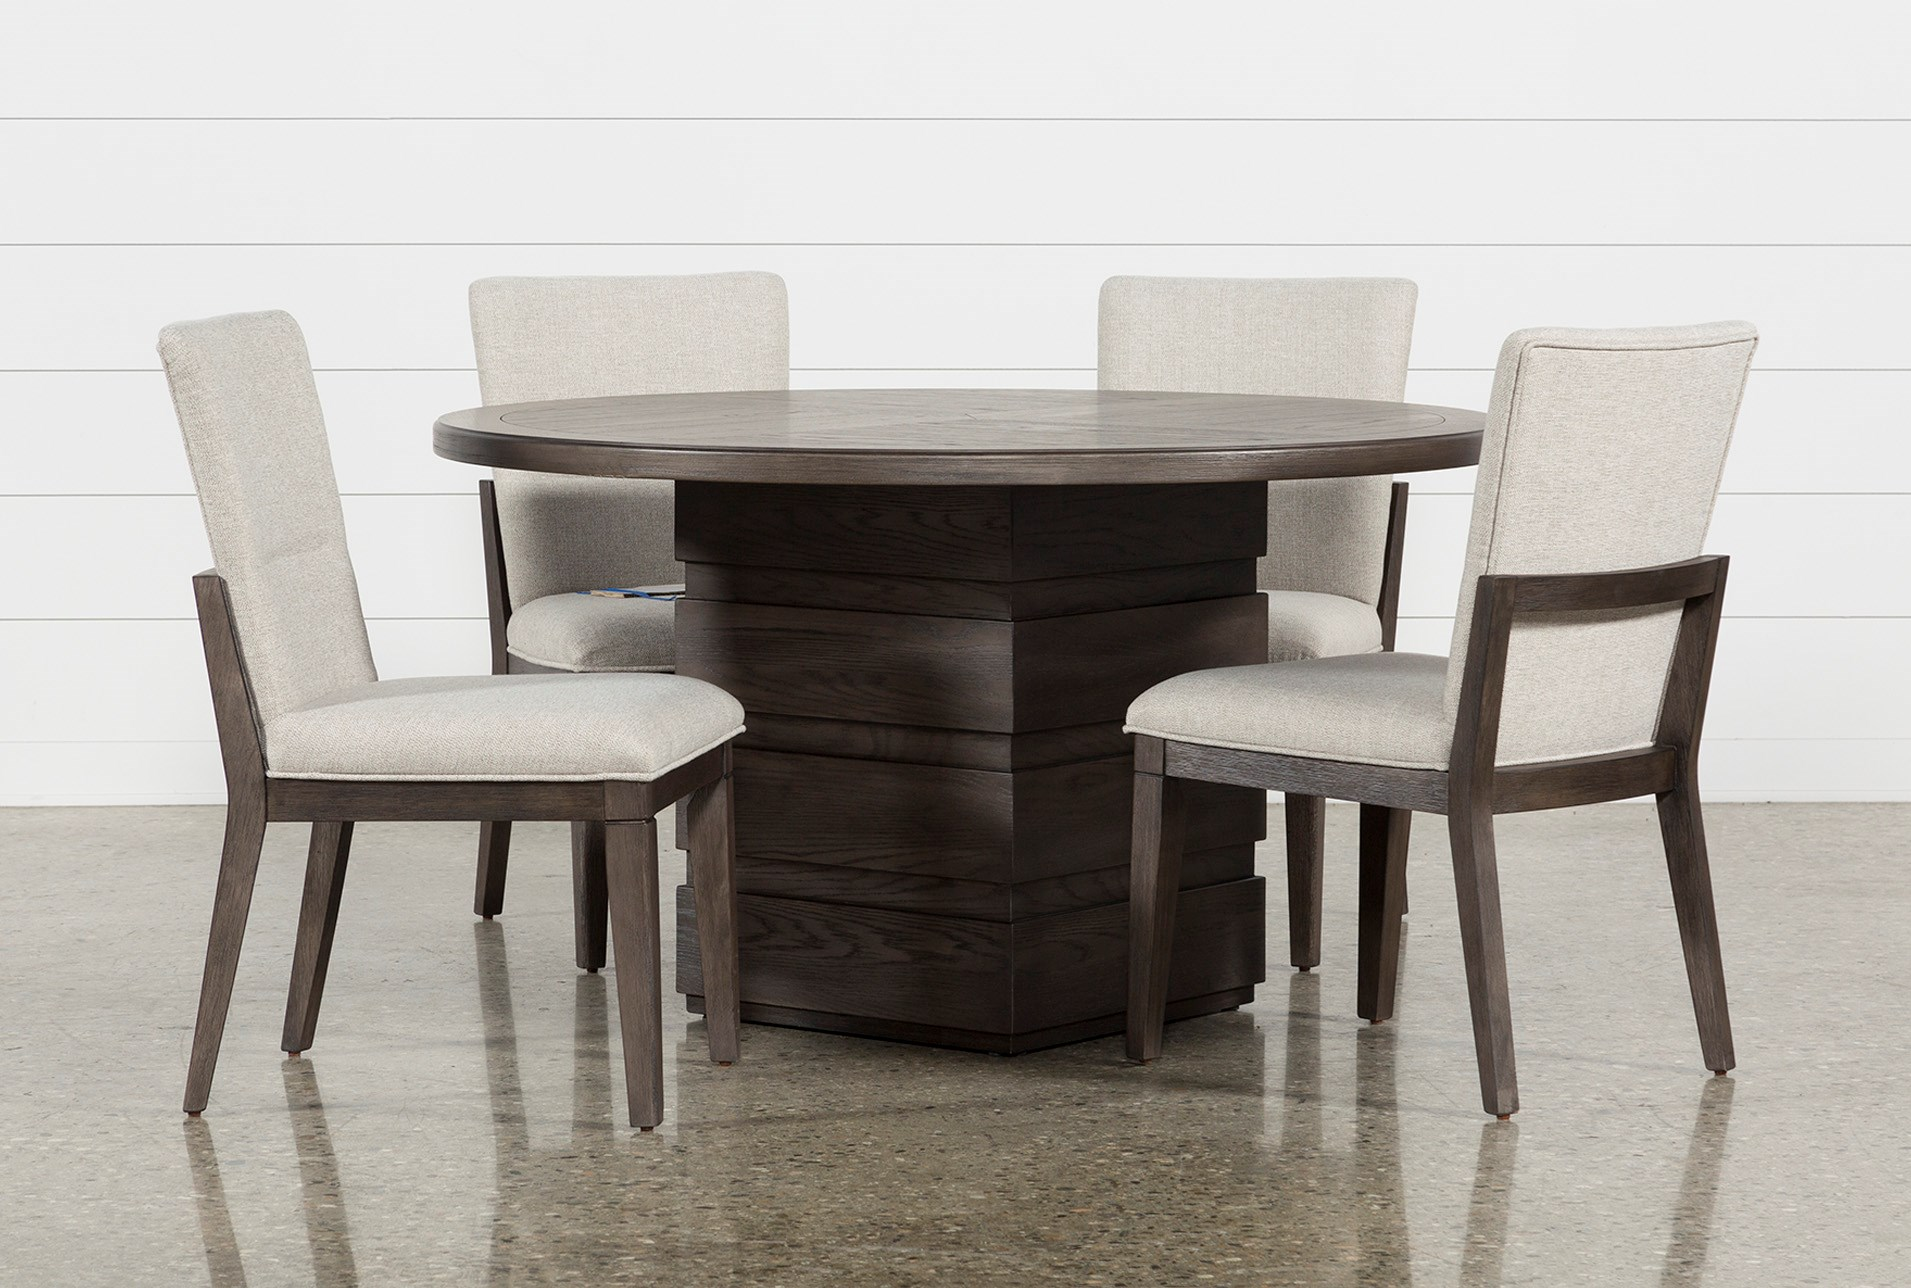 Helms 5 Piece Round Dining Set With Side Chairs Qty 1 Has Been Successfully Added To Your Cart